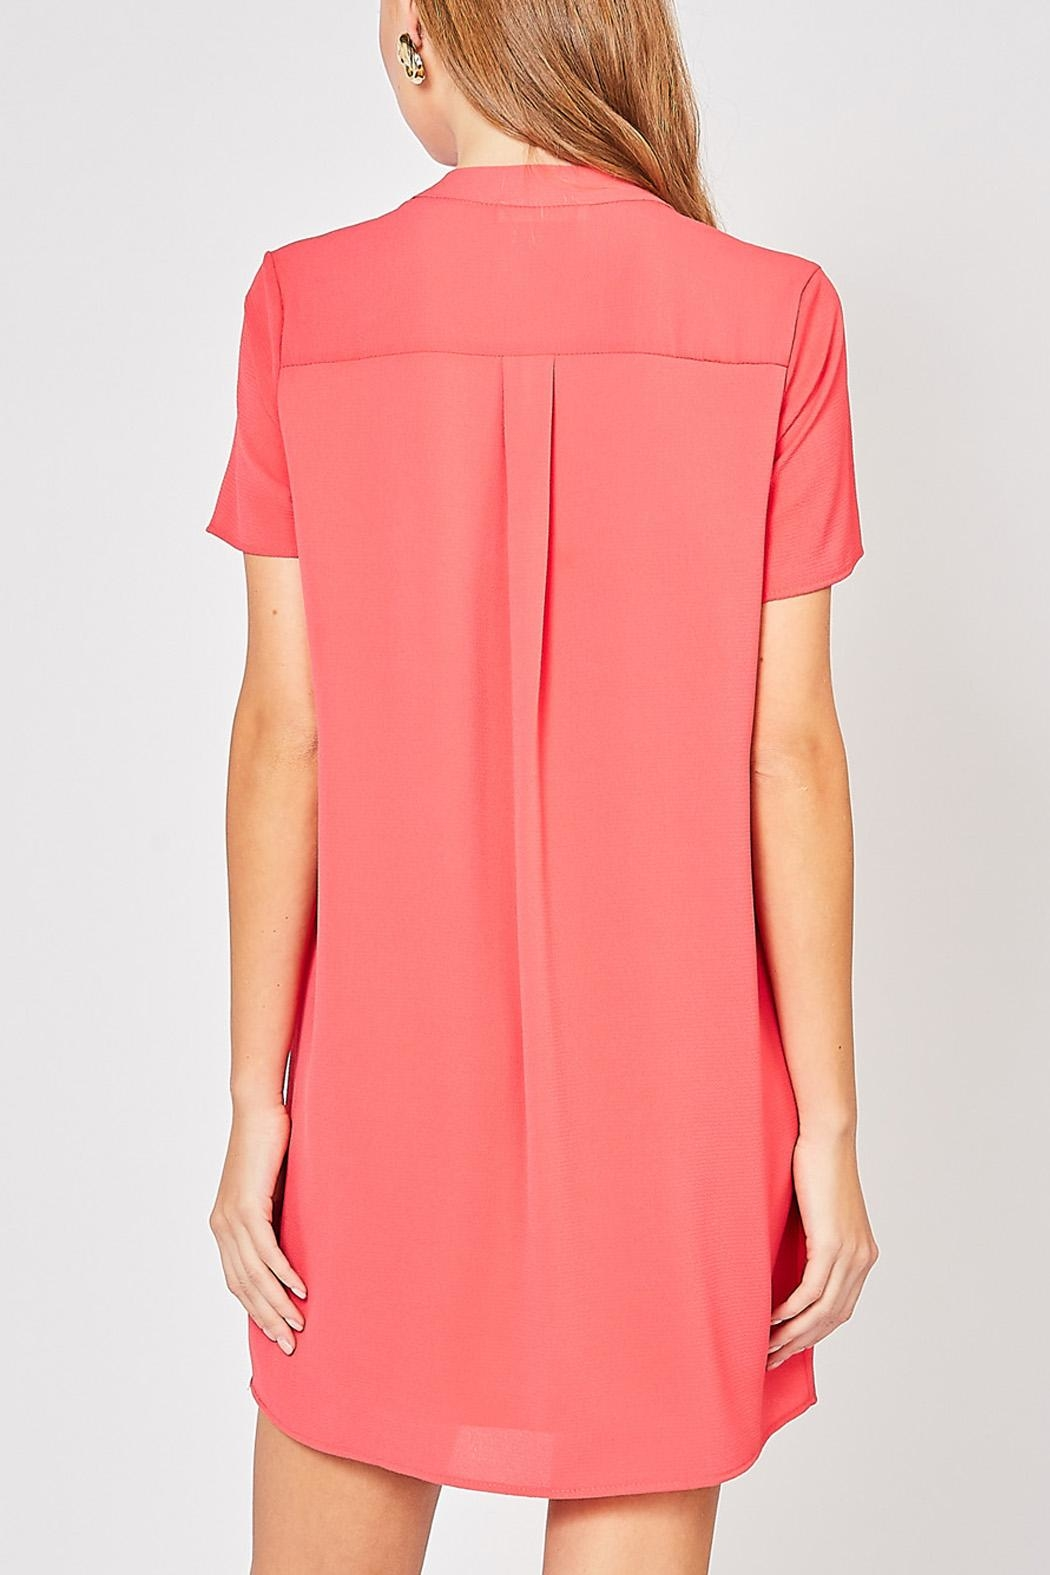 12pm by Mon Ami Hot Coral Dress - Front Full Image